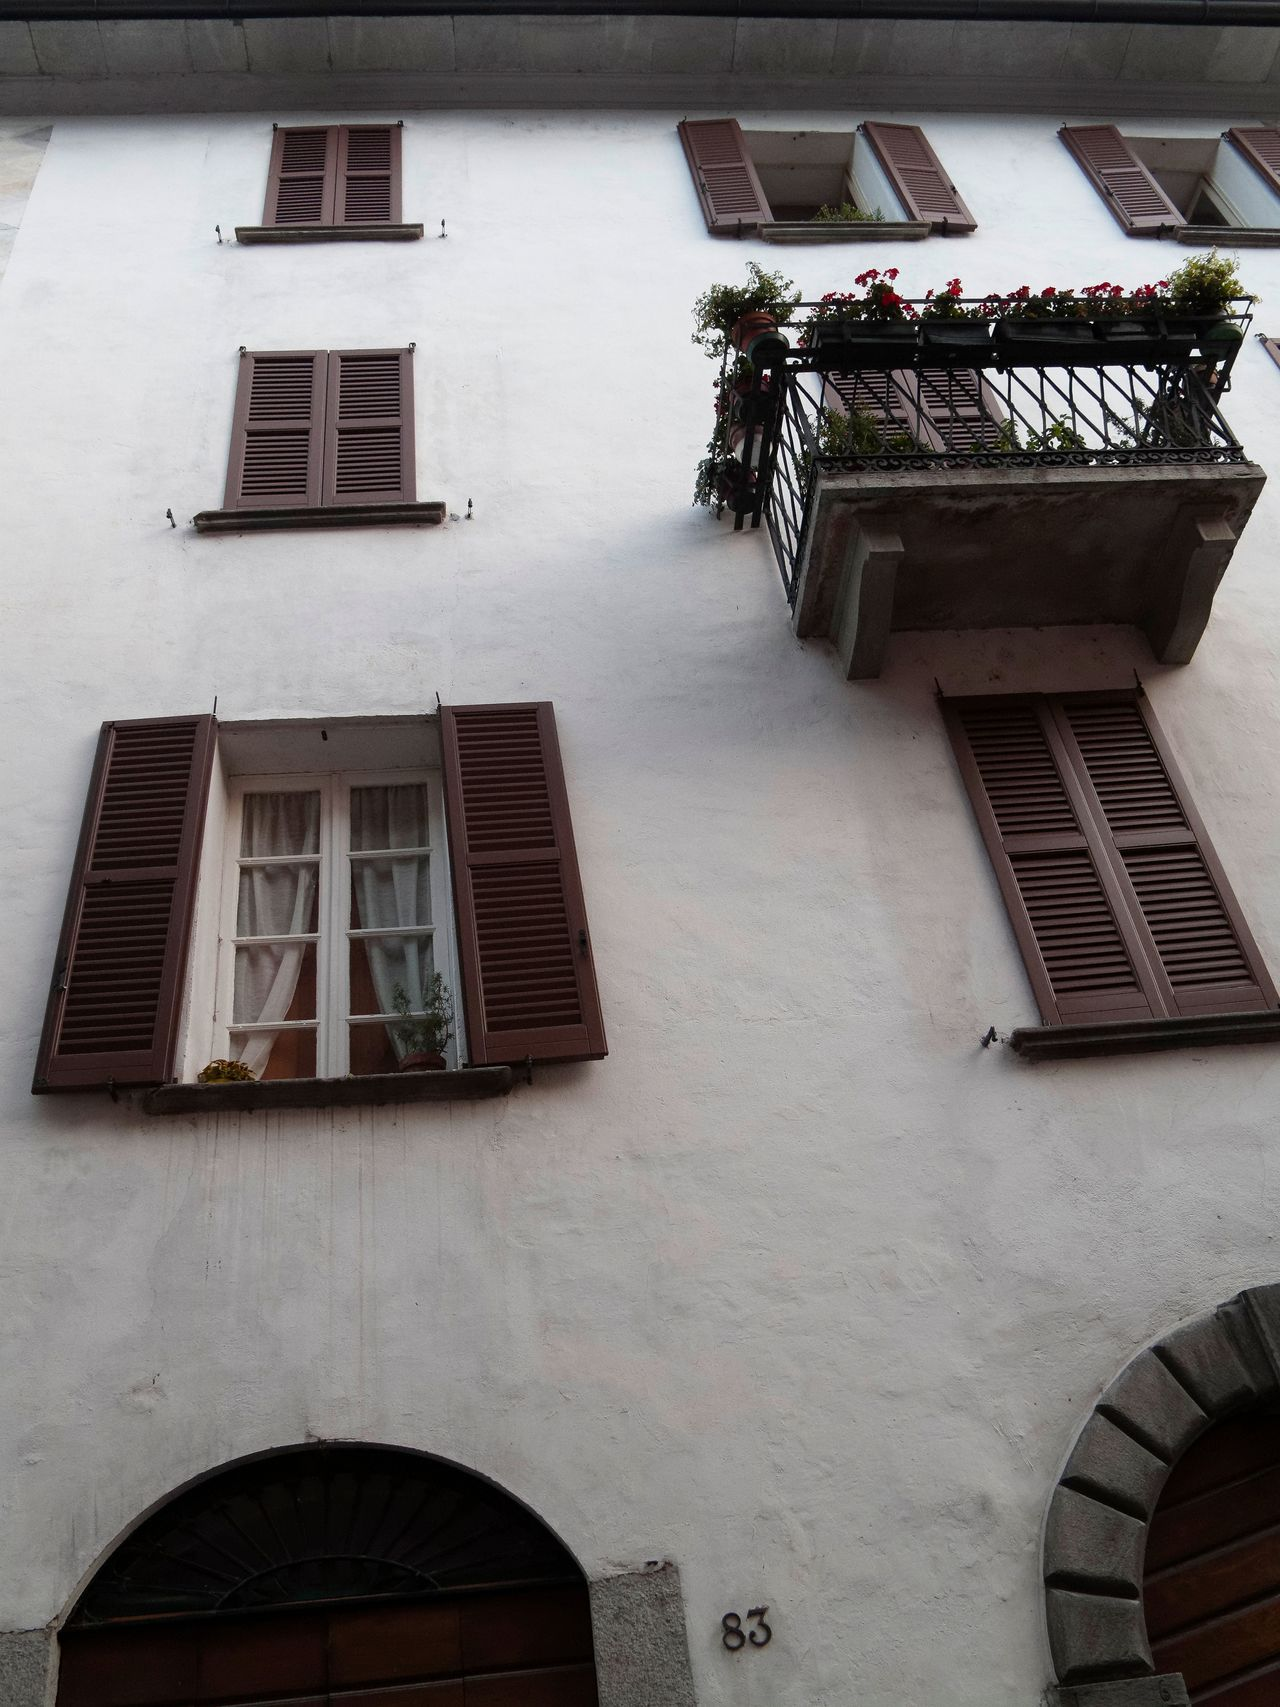 Architecture Balcony Building Exterior Built Structure Day Low Angle View No People Outdoors Sky Window